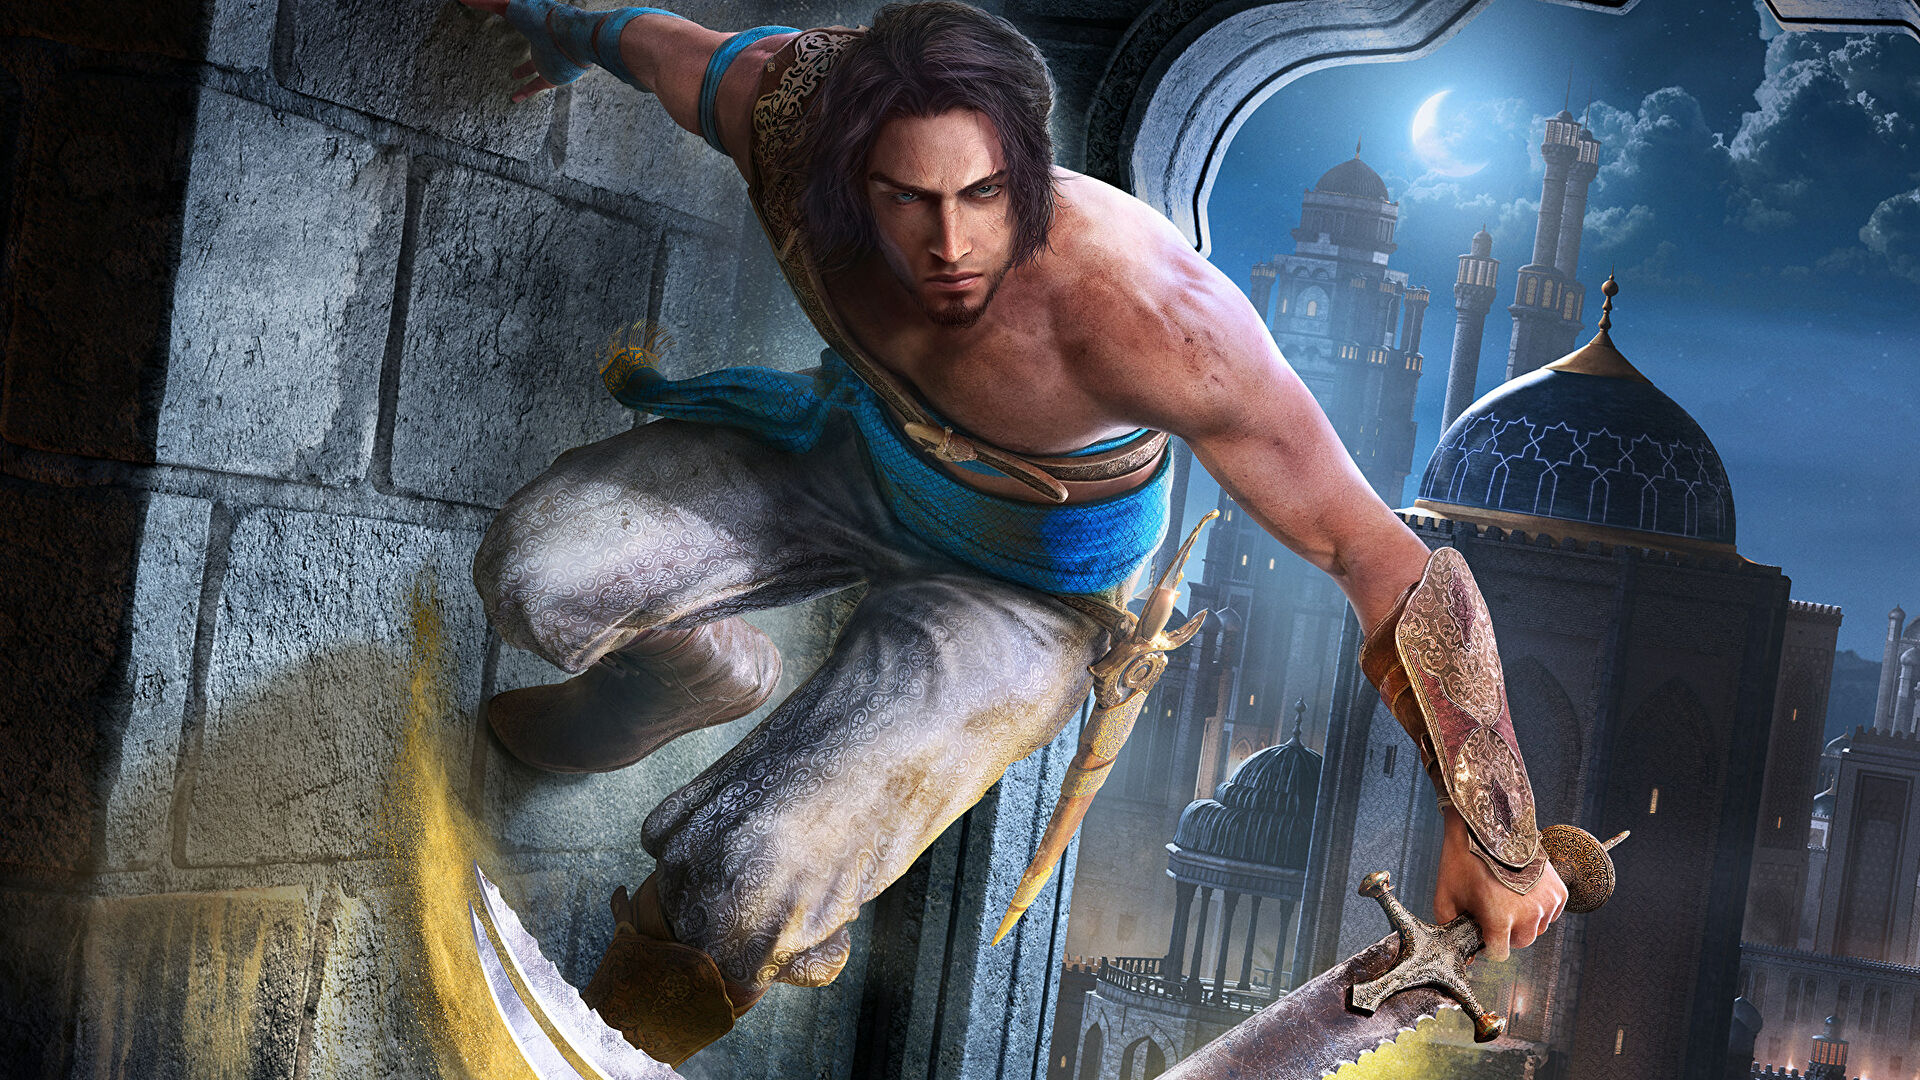 Prince Of Persia Sands Of Time Remake Delayed To 2022 Rock Paper Shotgun